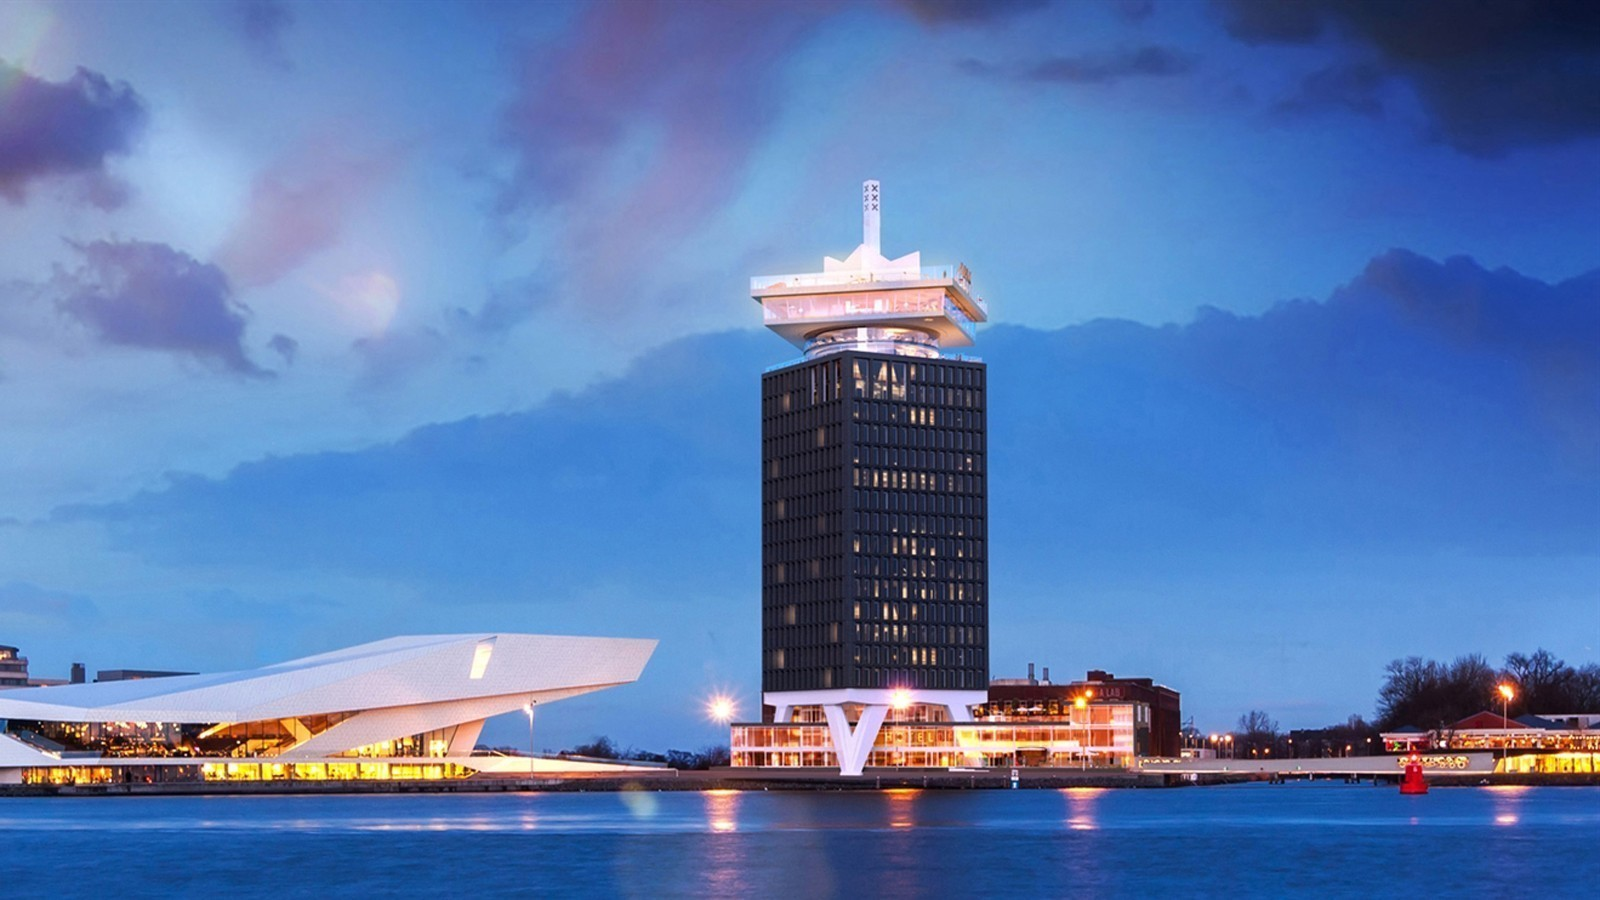 A dam tower bringing visitors to new heights for Dam in amsterdam